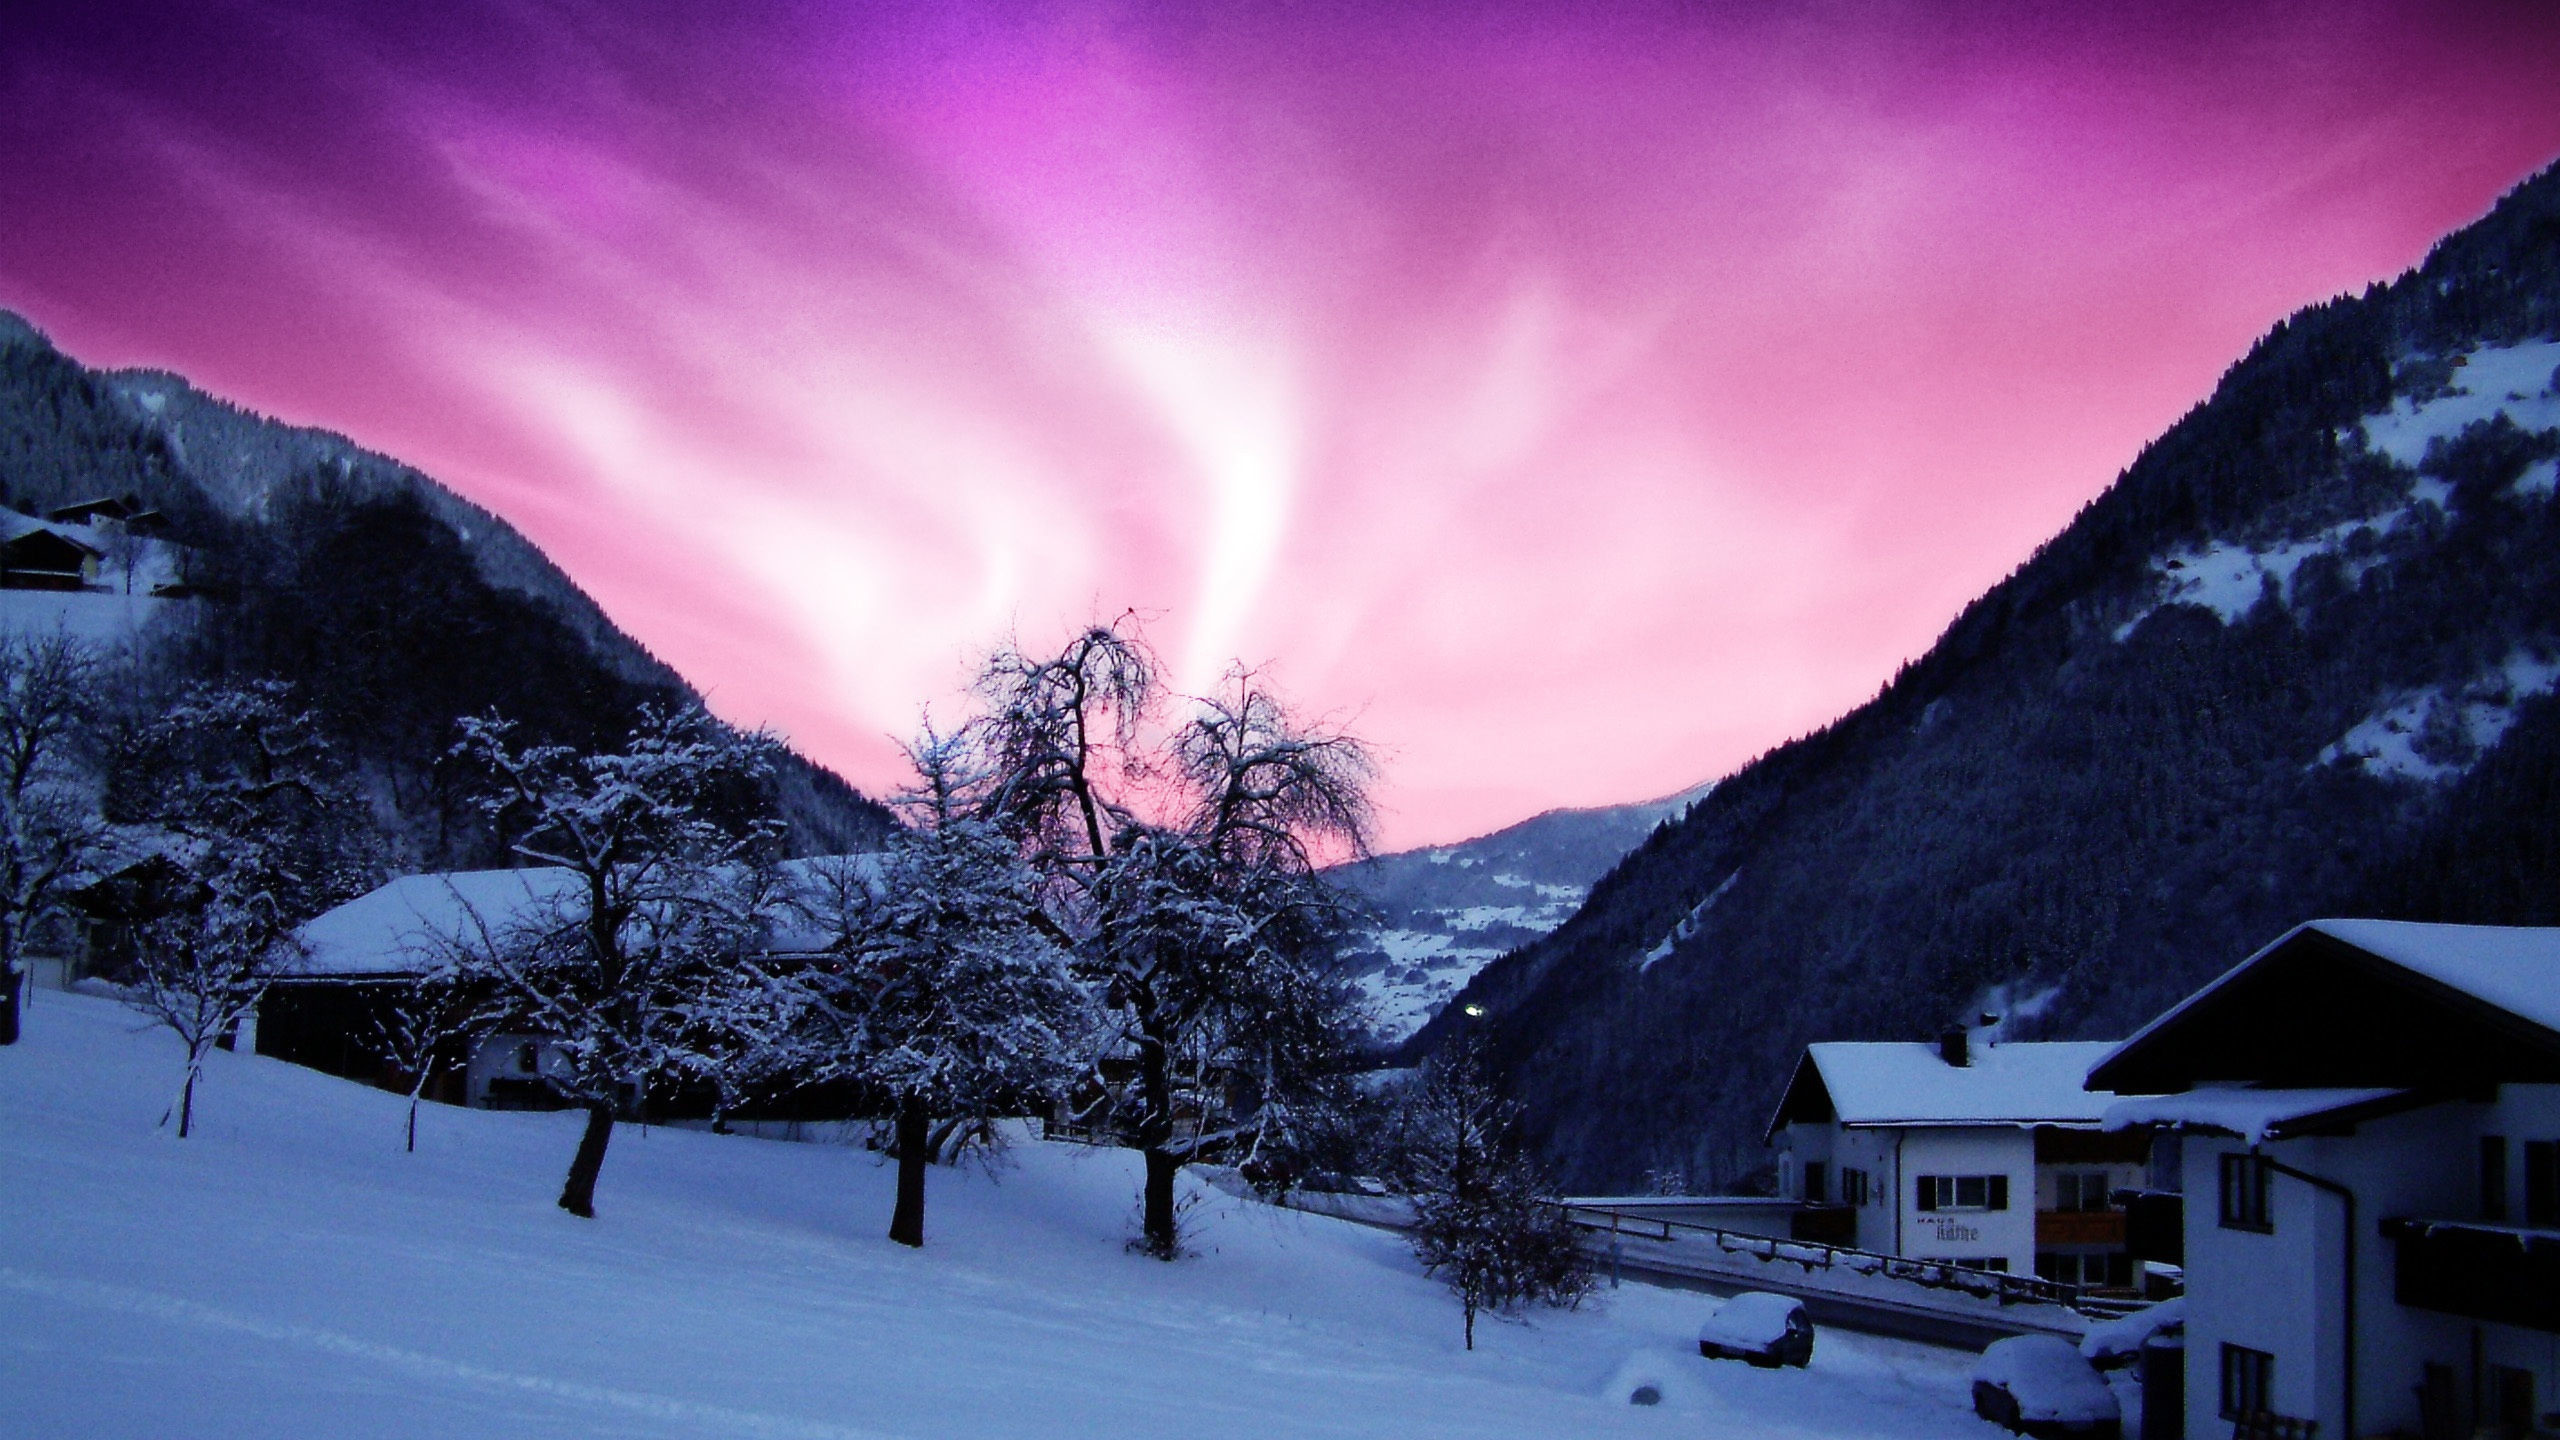 Res: 2560x1440, HD Beauty Of The Northern Lights Purple Sky Cold Winter House Hd Wallpapers  Of Northern Lights